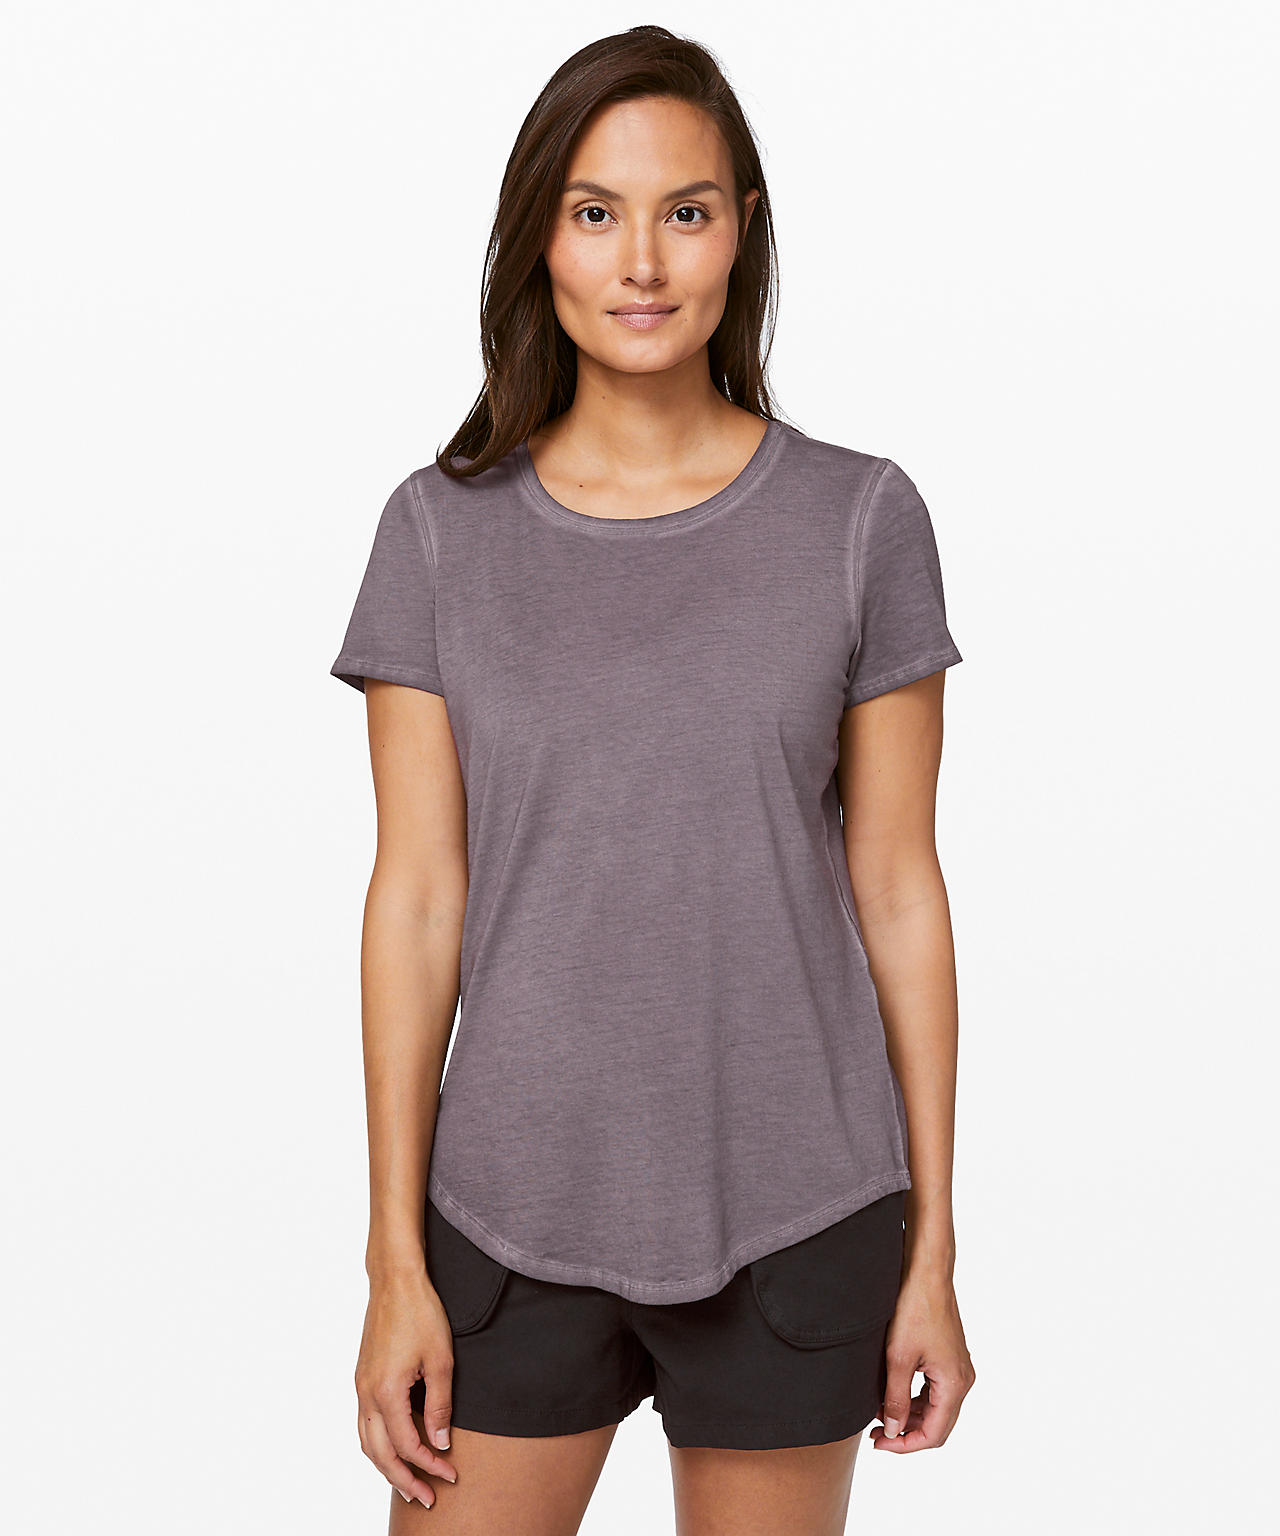 Love Crew Fade, Lululemon Upload